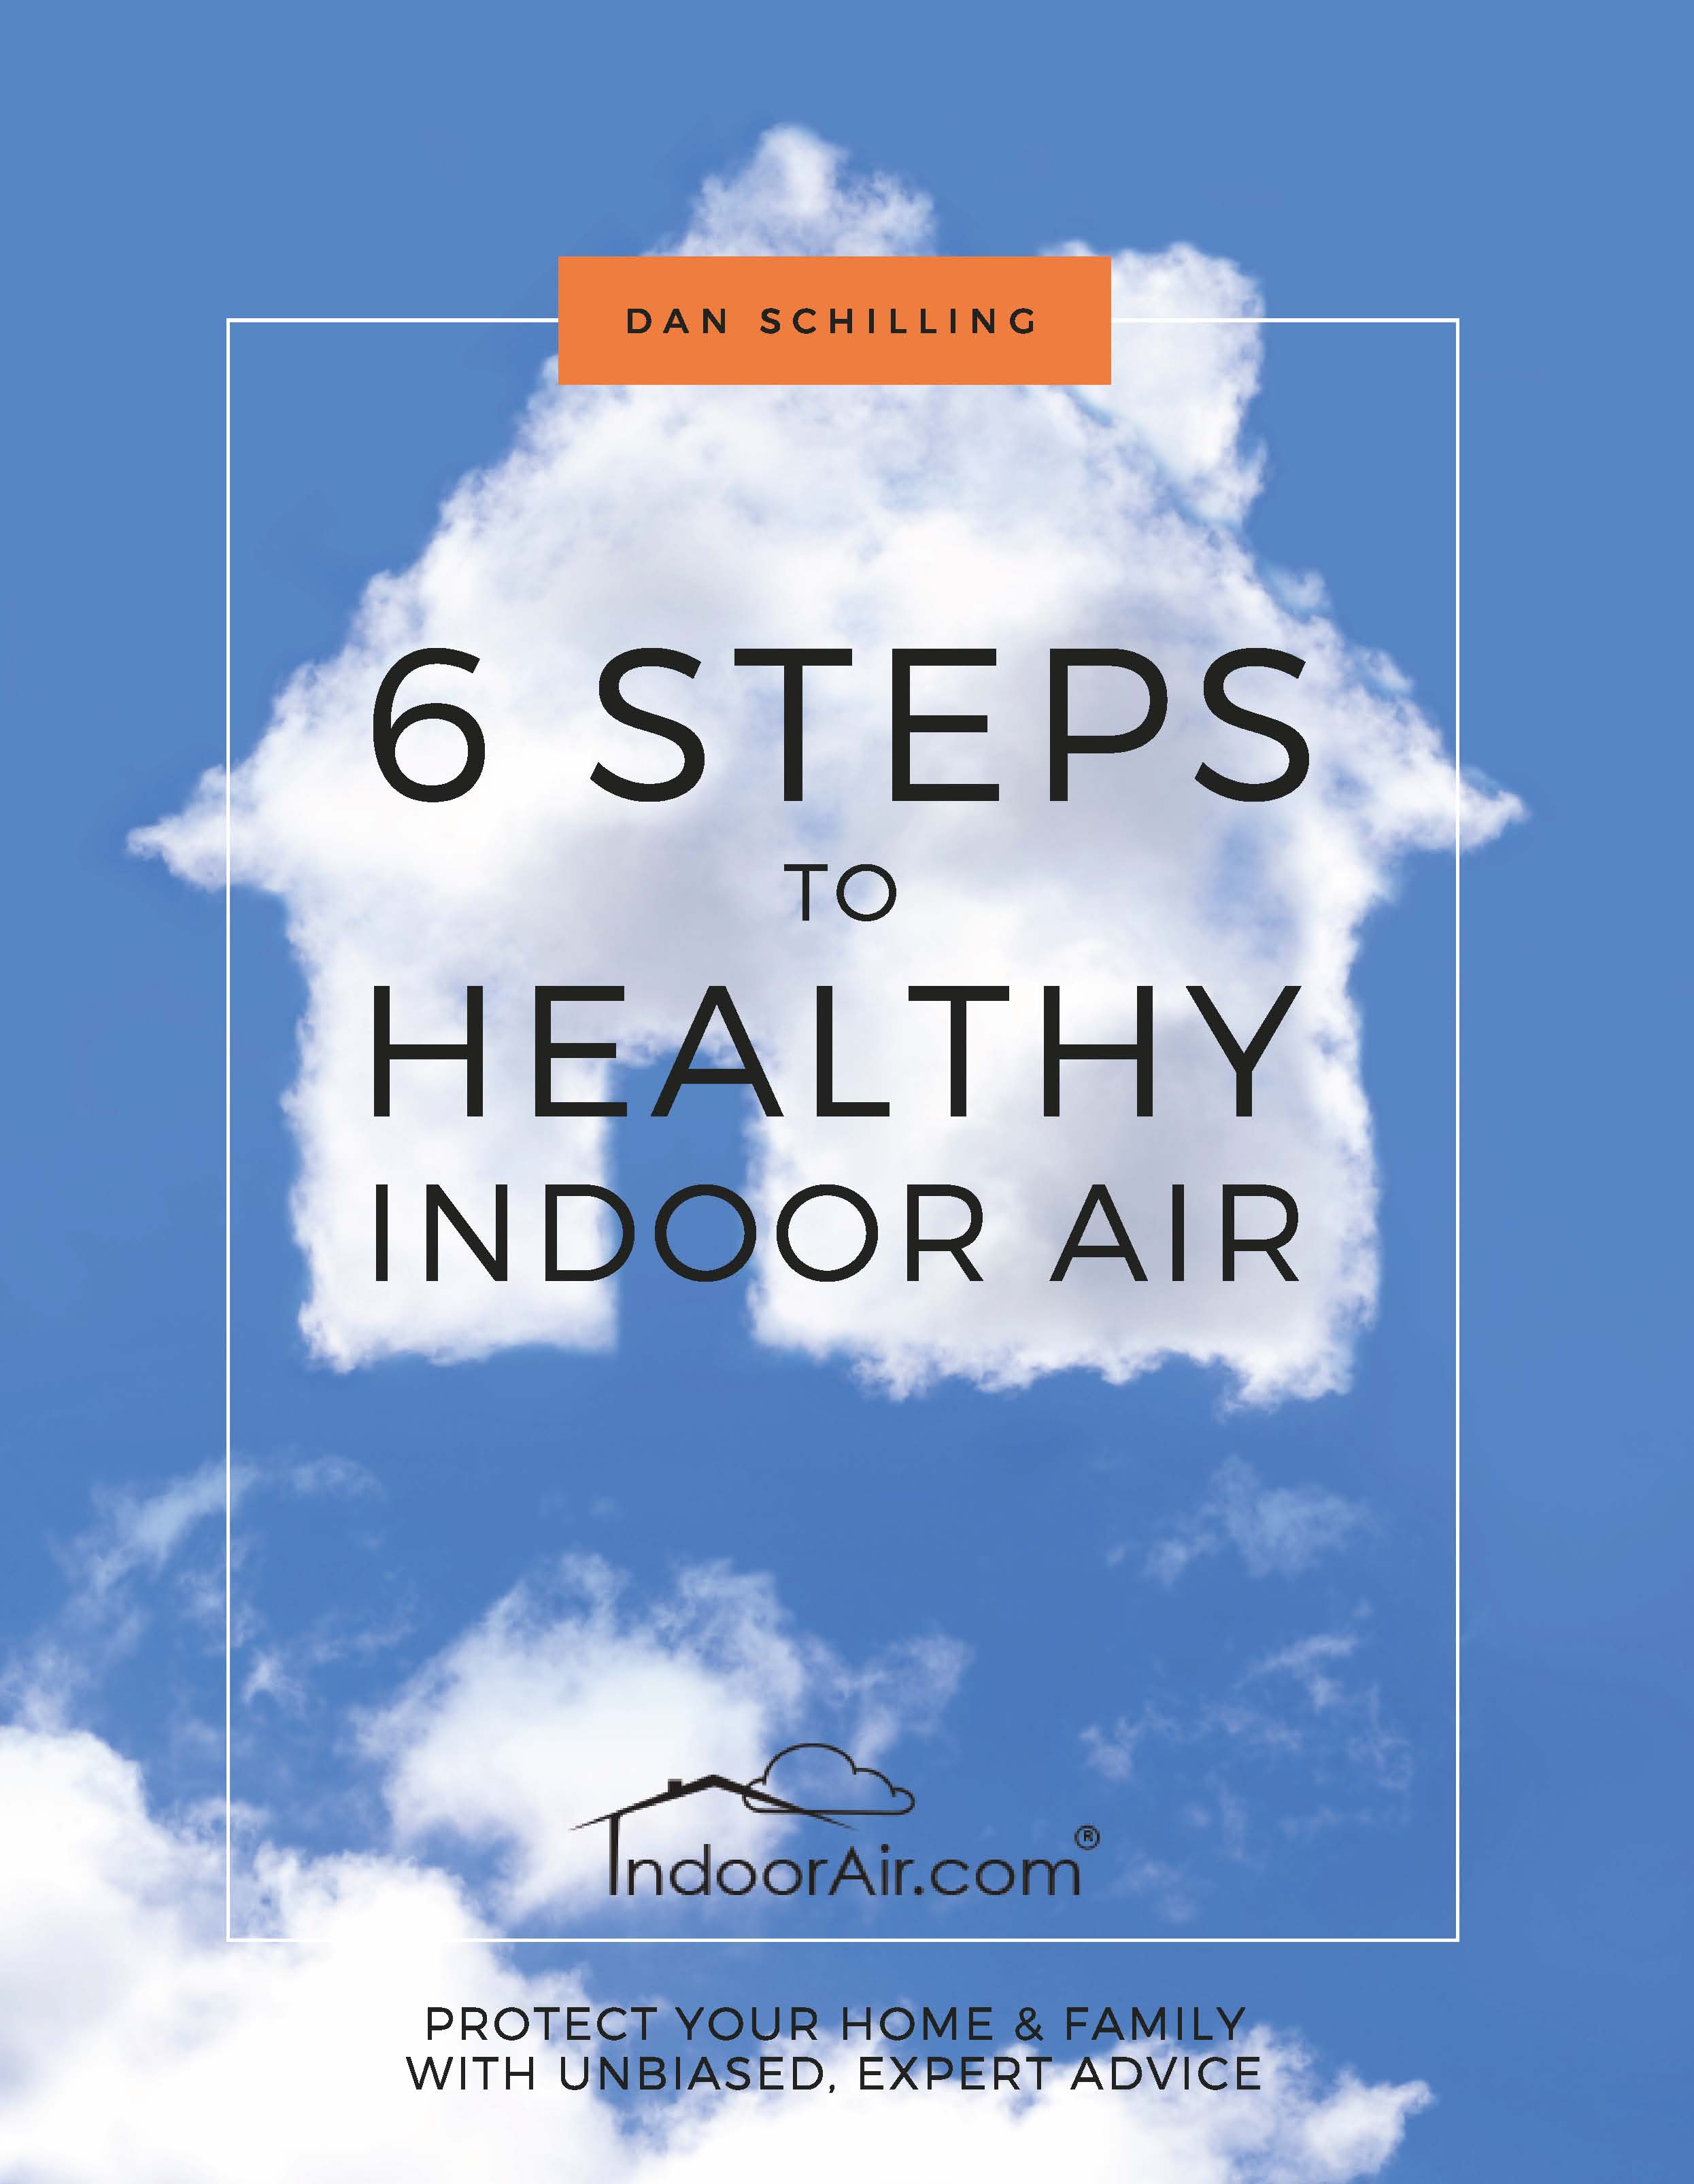 6 Steps to Healthy Indoor Air